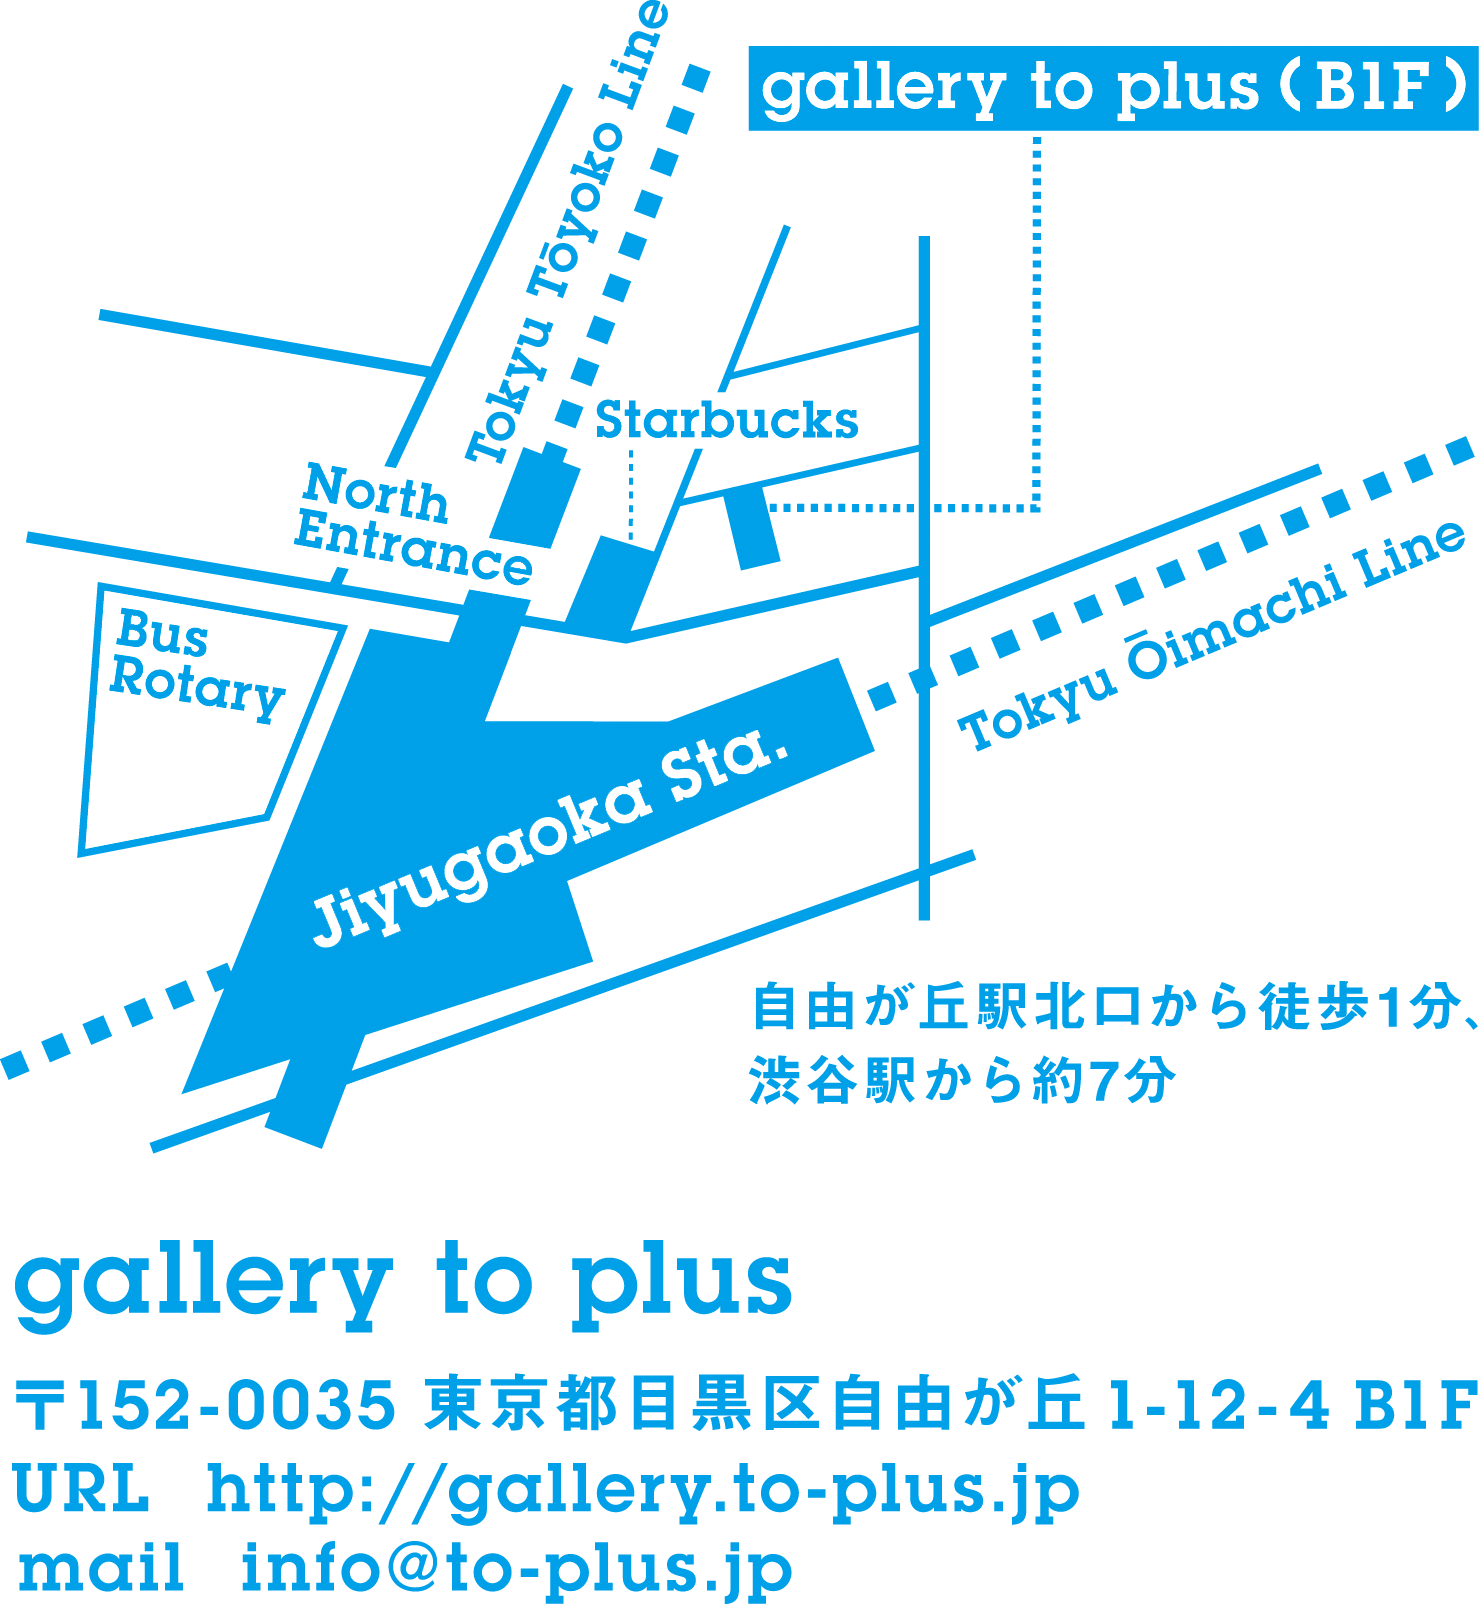 gallery to plus map